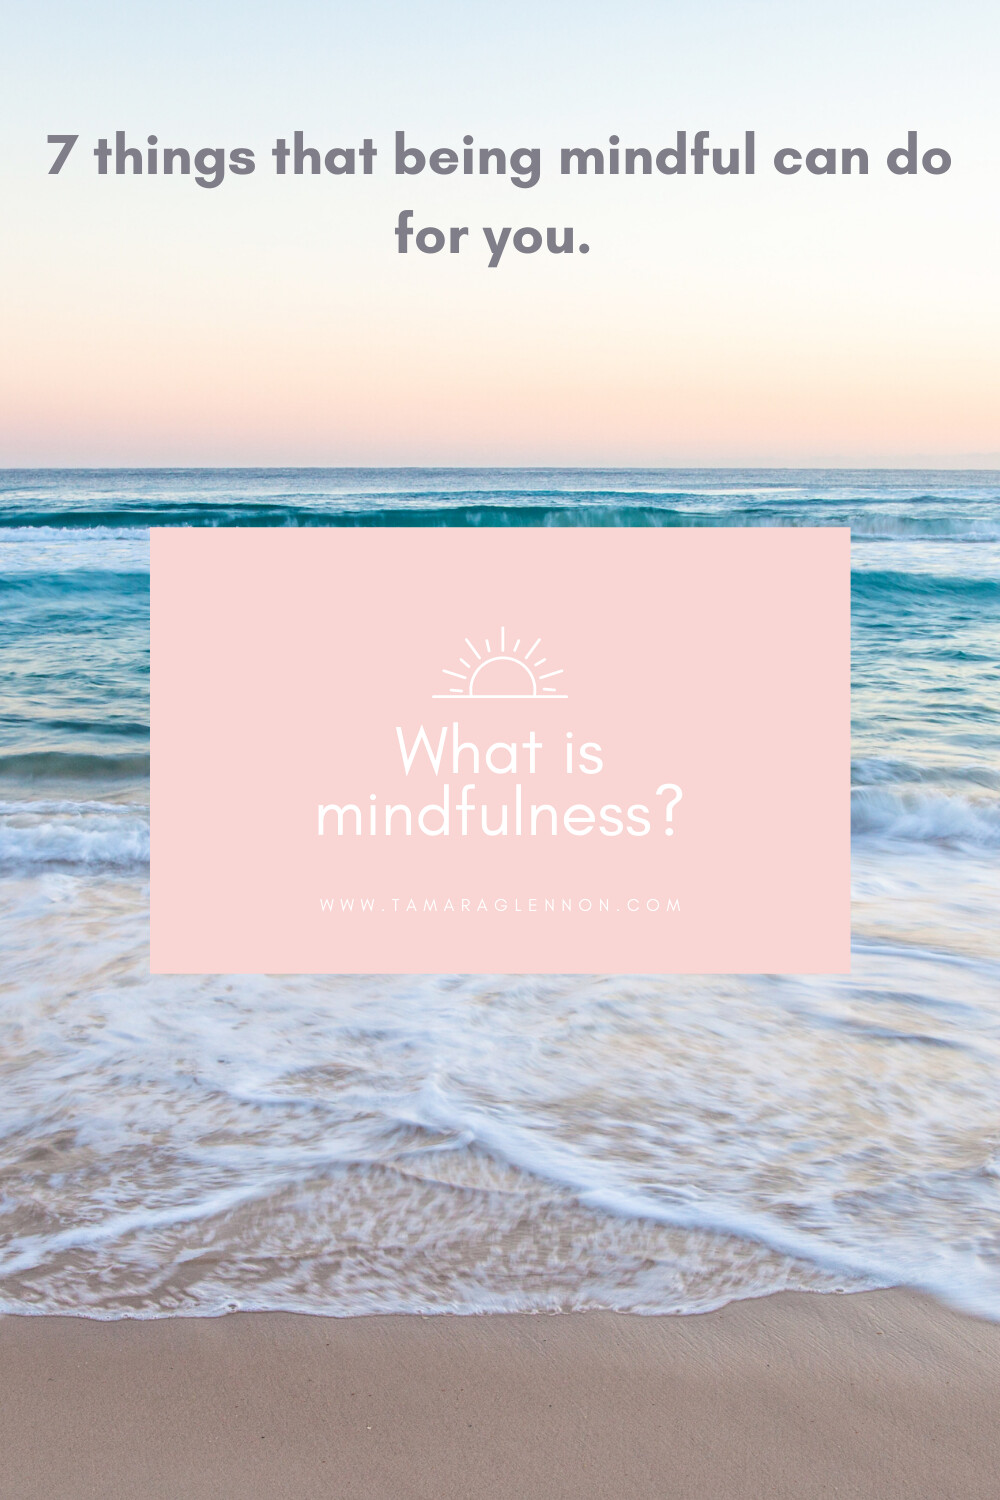 What is mindfulness and what can it do for you?